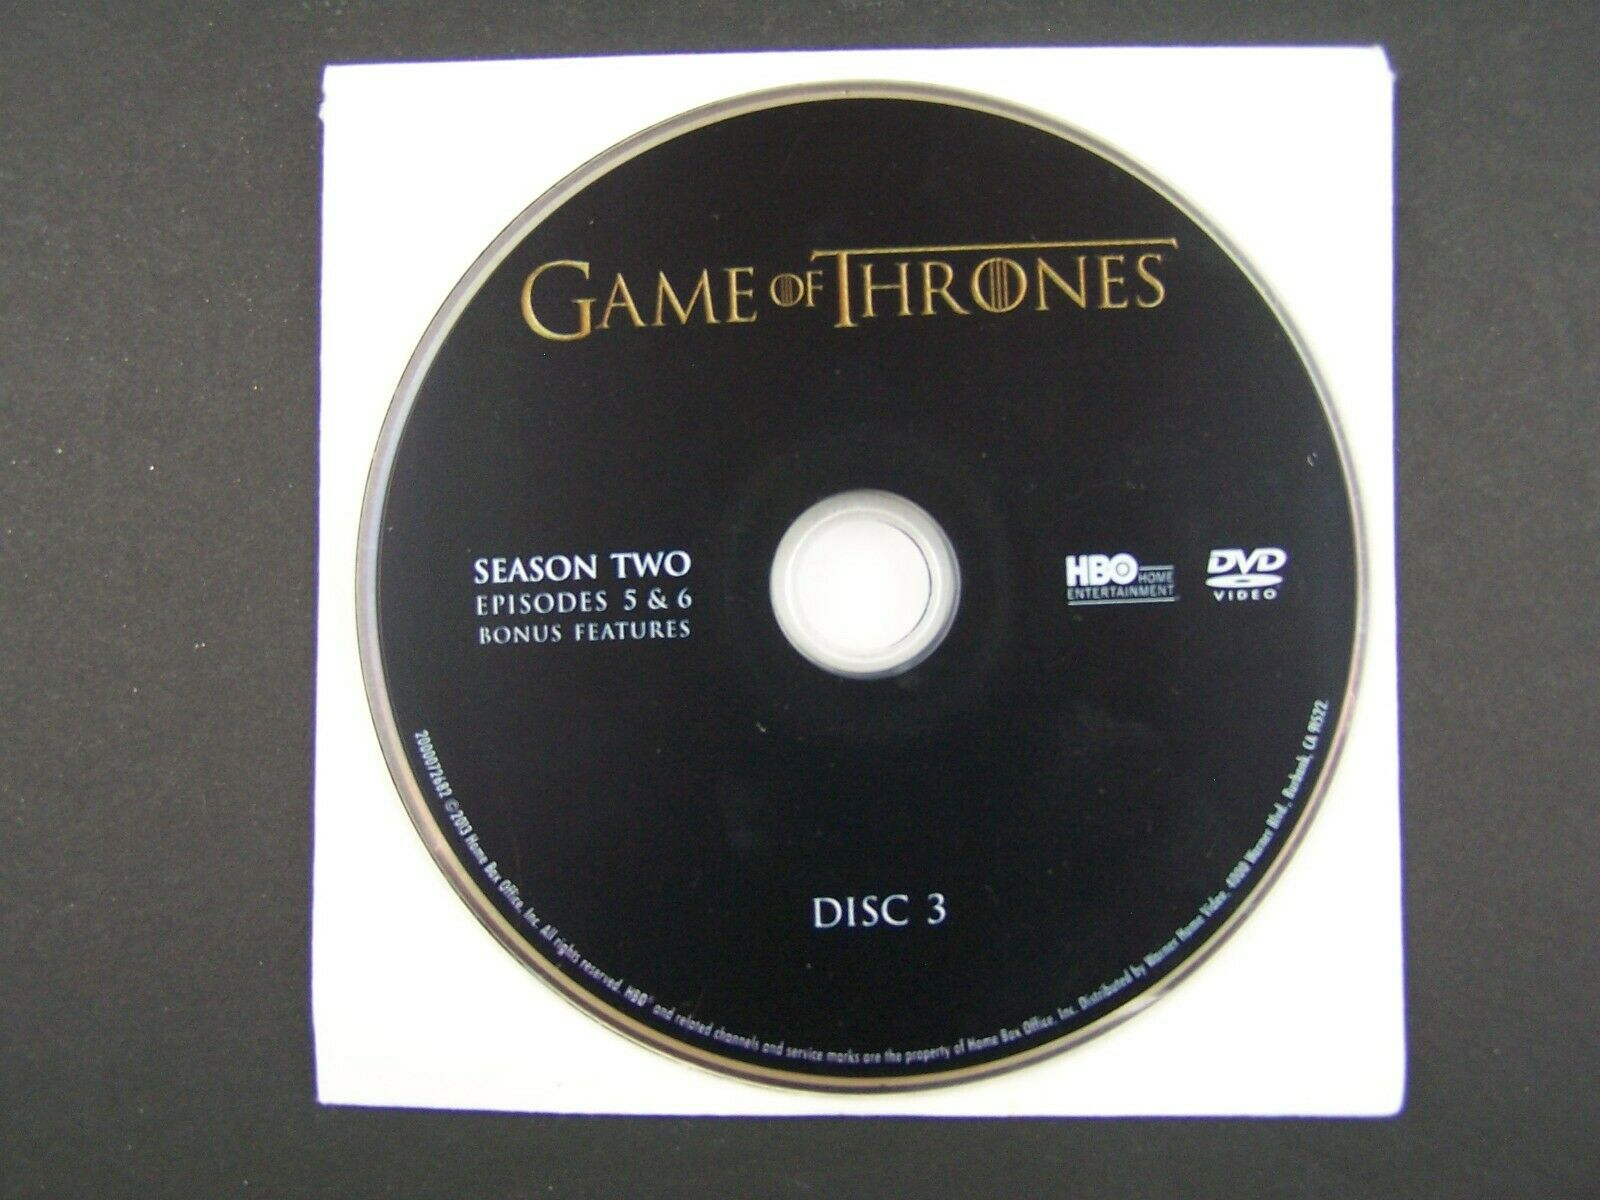 Game Of Thrones Season 2 Disc 3 Replacement DVD